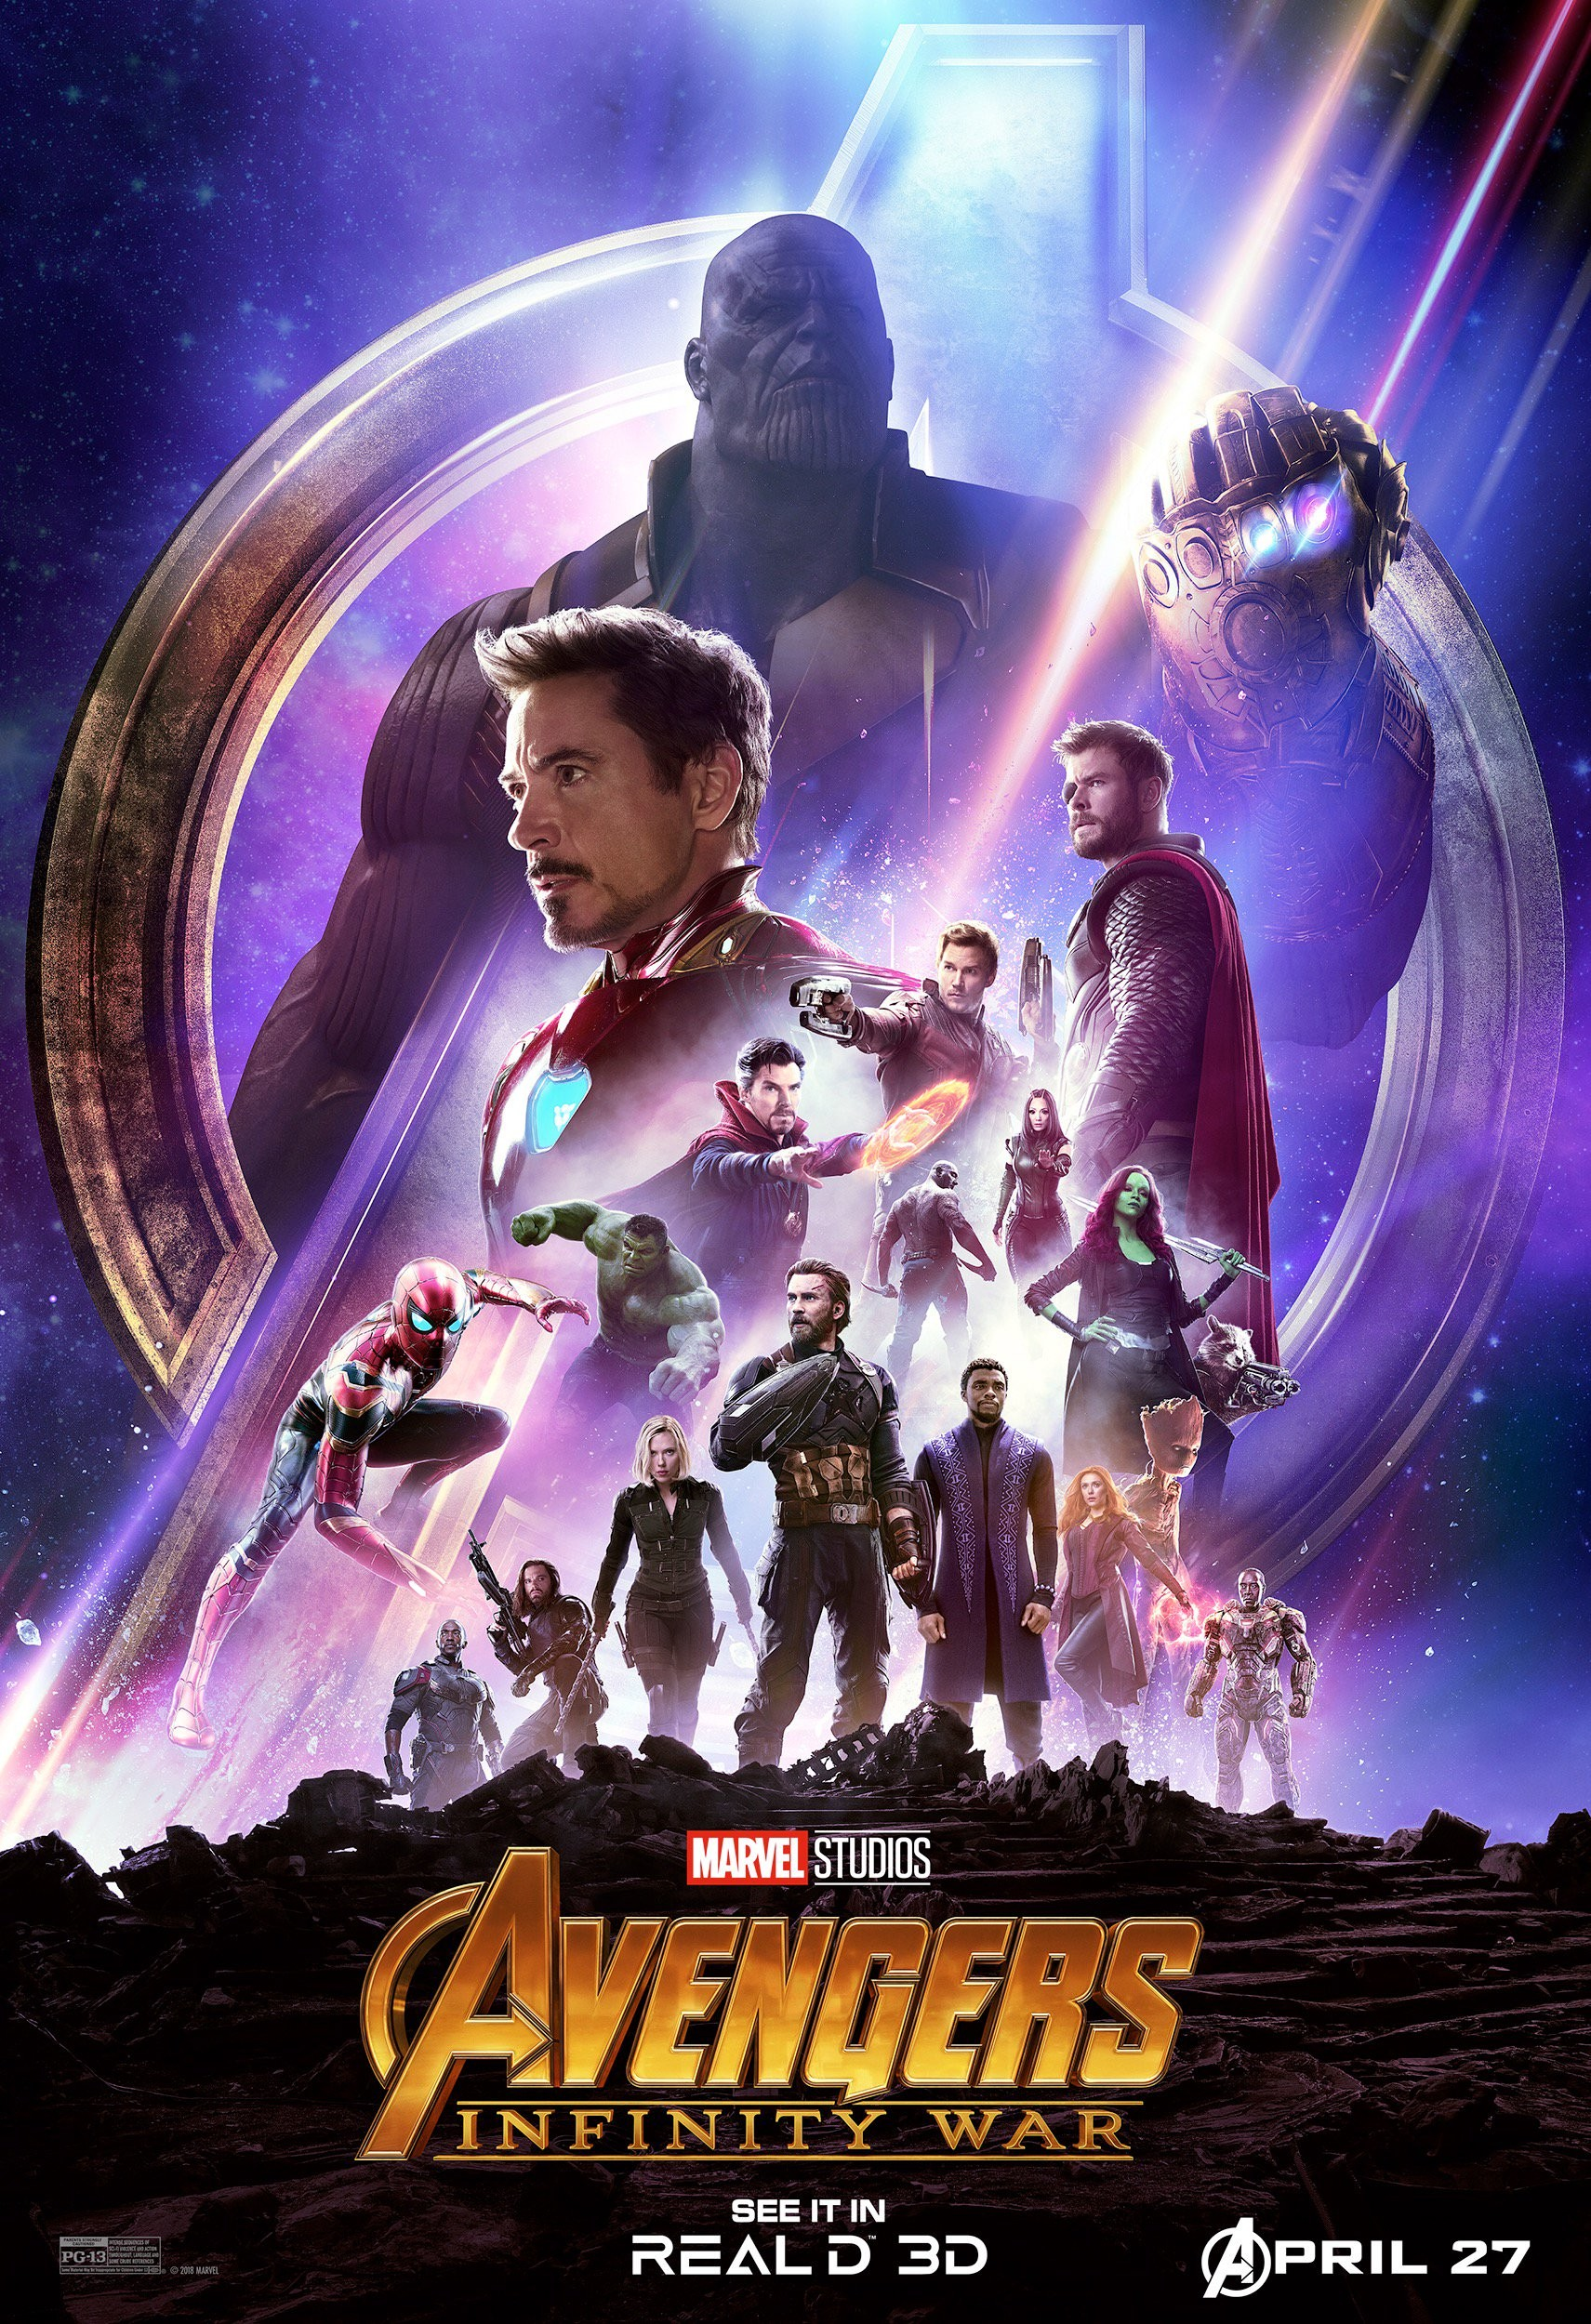 Avengers: Infinity War (2018) BluRay Hindi ORG DD 5.1 DTS Dual Audio 2160p 1080p 720p 480p ESub x264 | 10bit HEVC